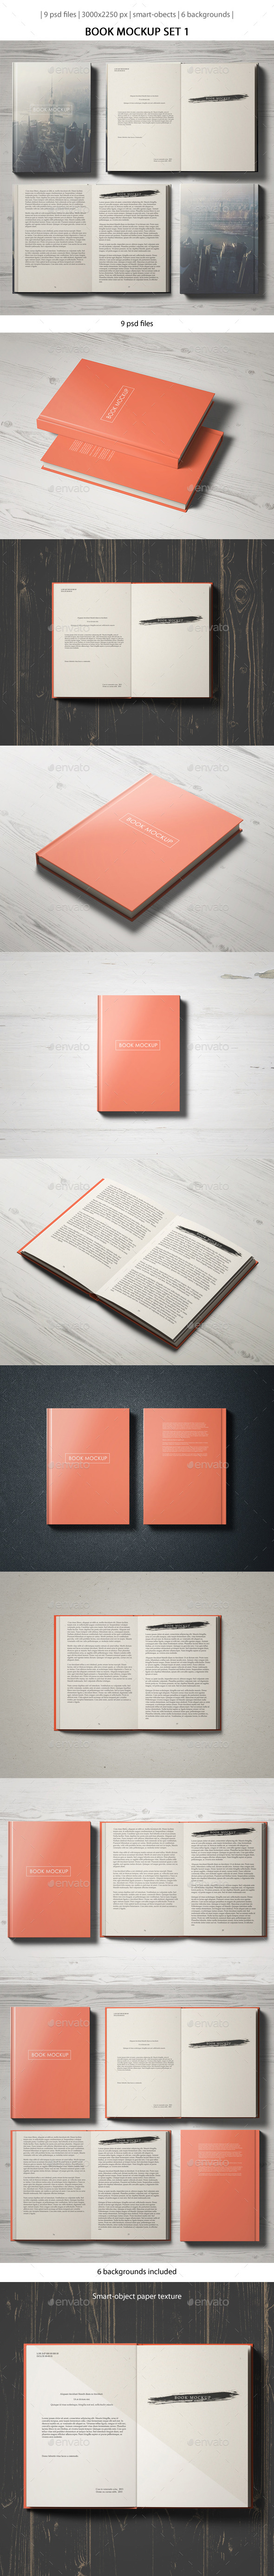 Book Mockup Set 1 - Books Print